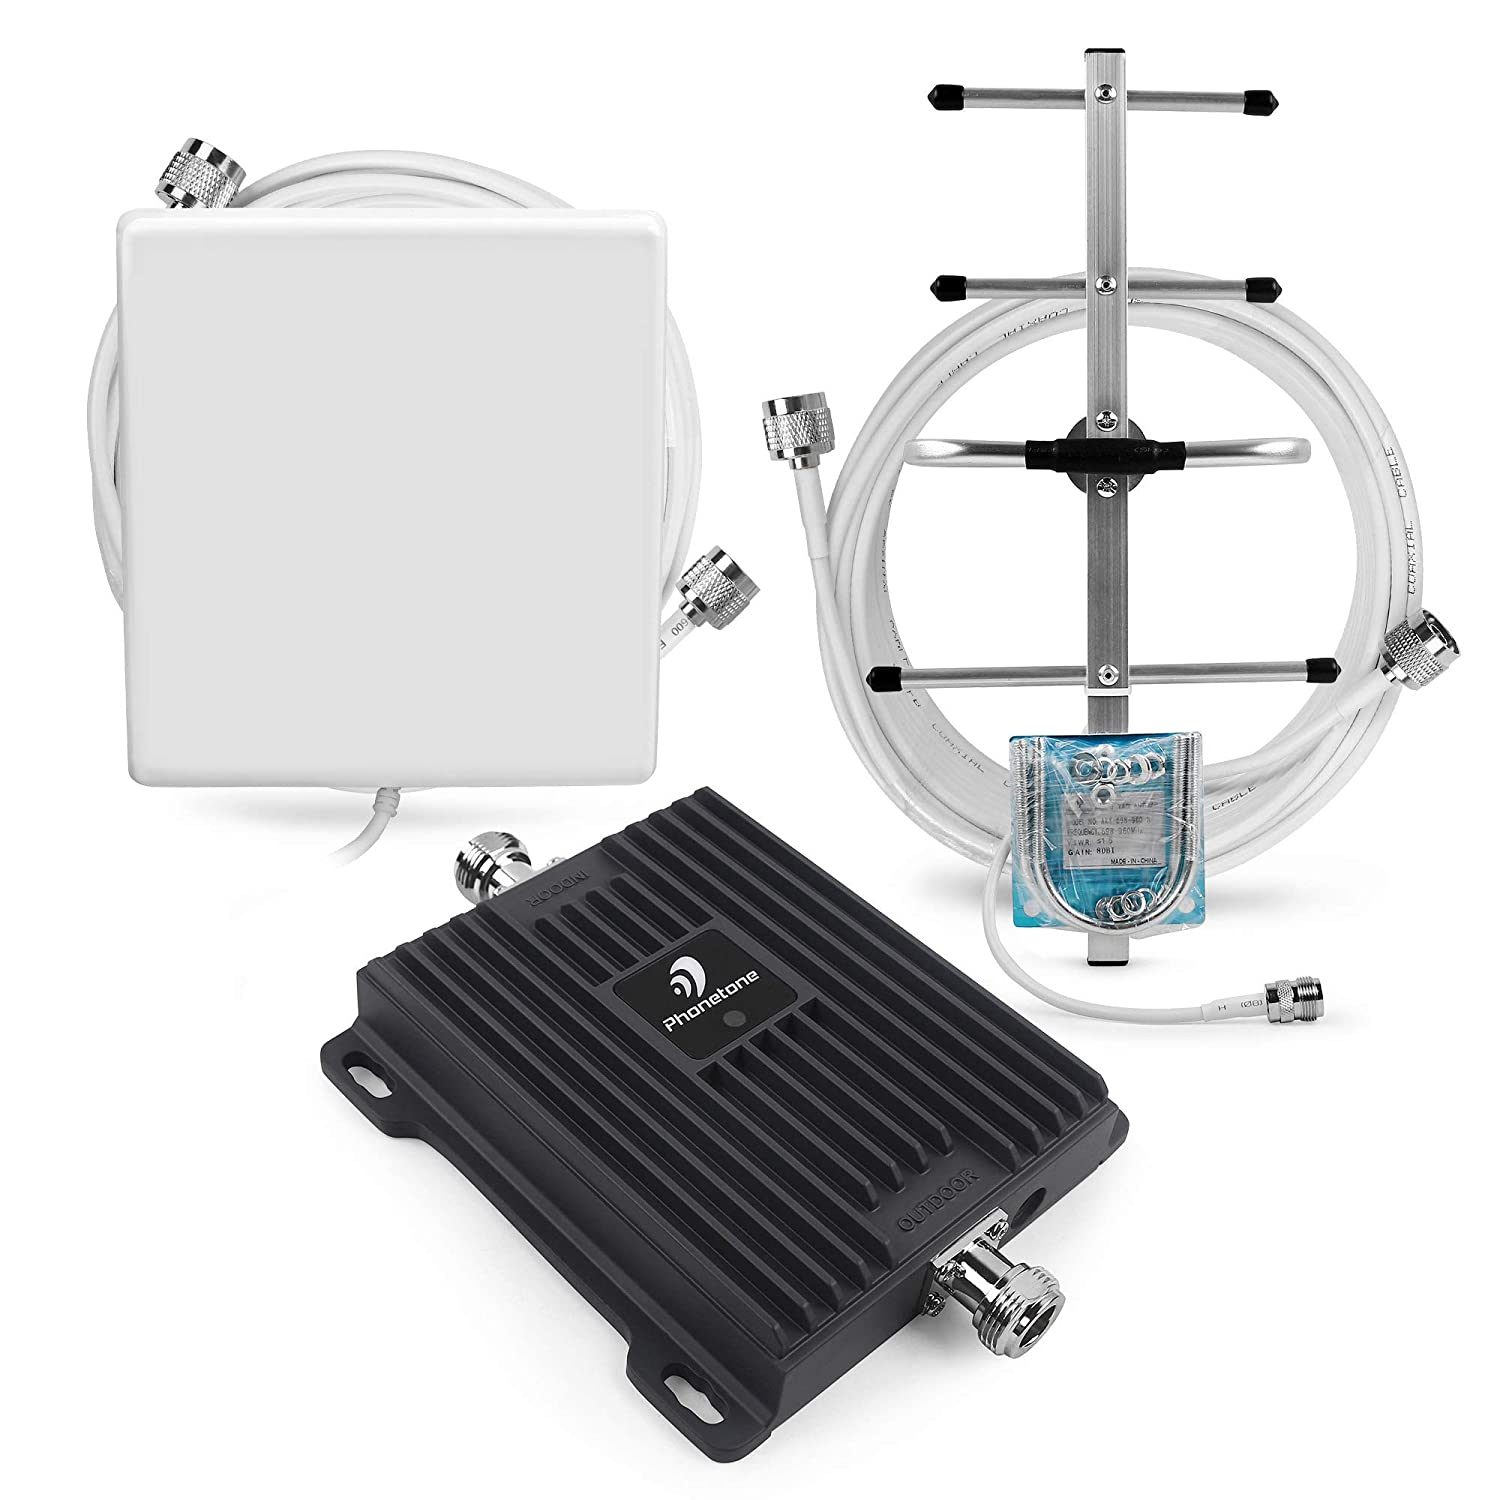 Cell Phone Signal Booster for Canada - 4G LTE 700MHz Band 12/17 Home Repeater Amplifier with Directional Yagi Antenna - Suitable for Fido, Rogers, Telus and Videotron Phonetone Ltd.